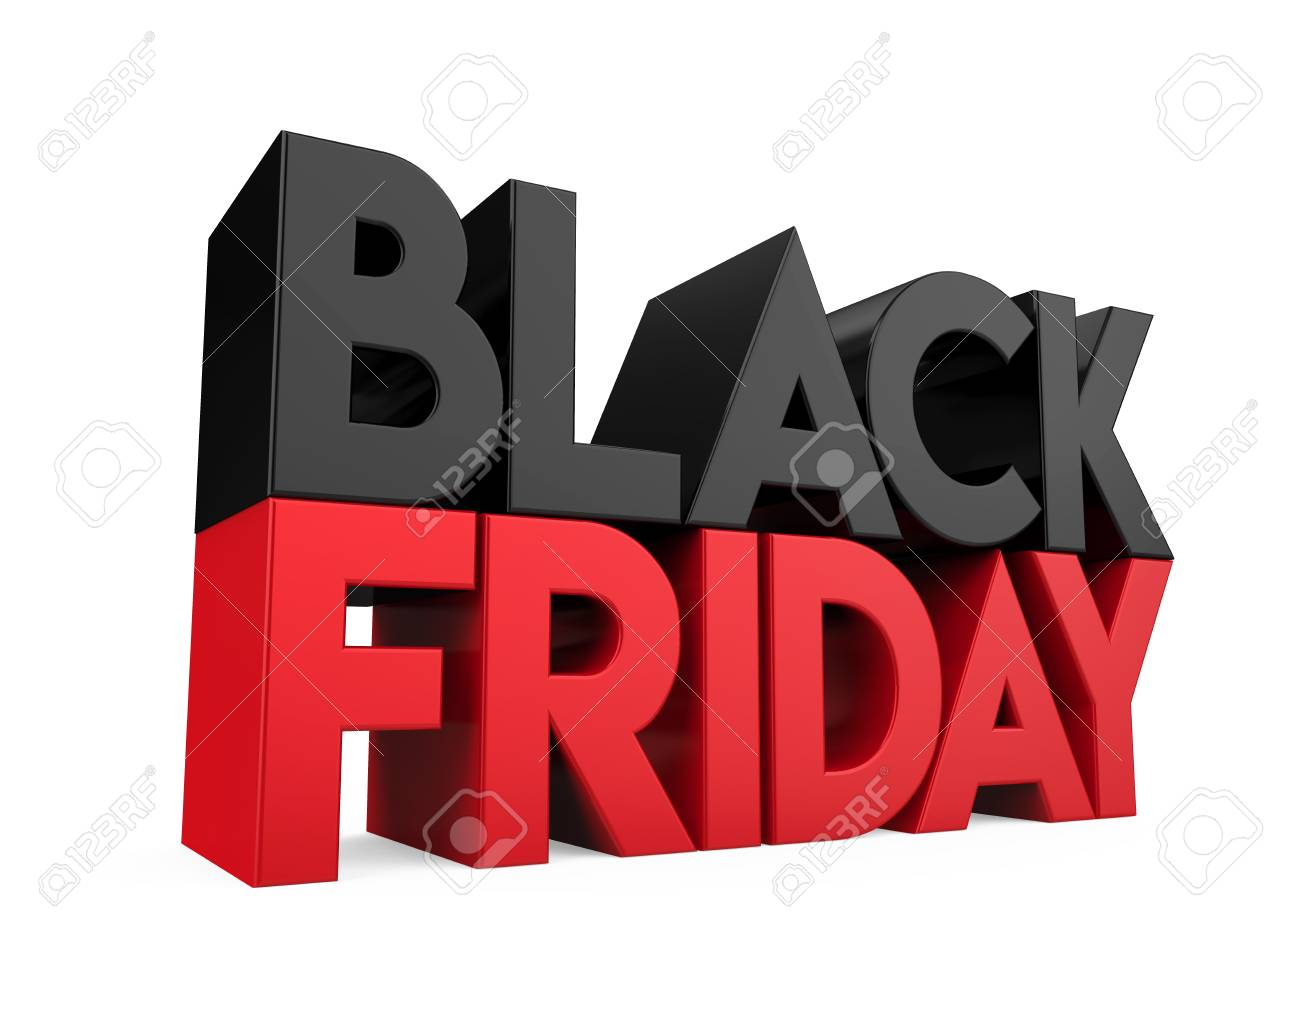 Black Friday Concept Isolated - 108367836